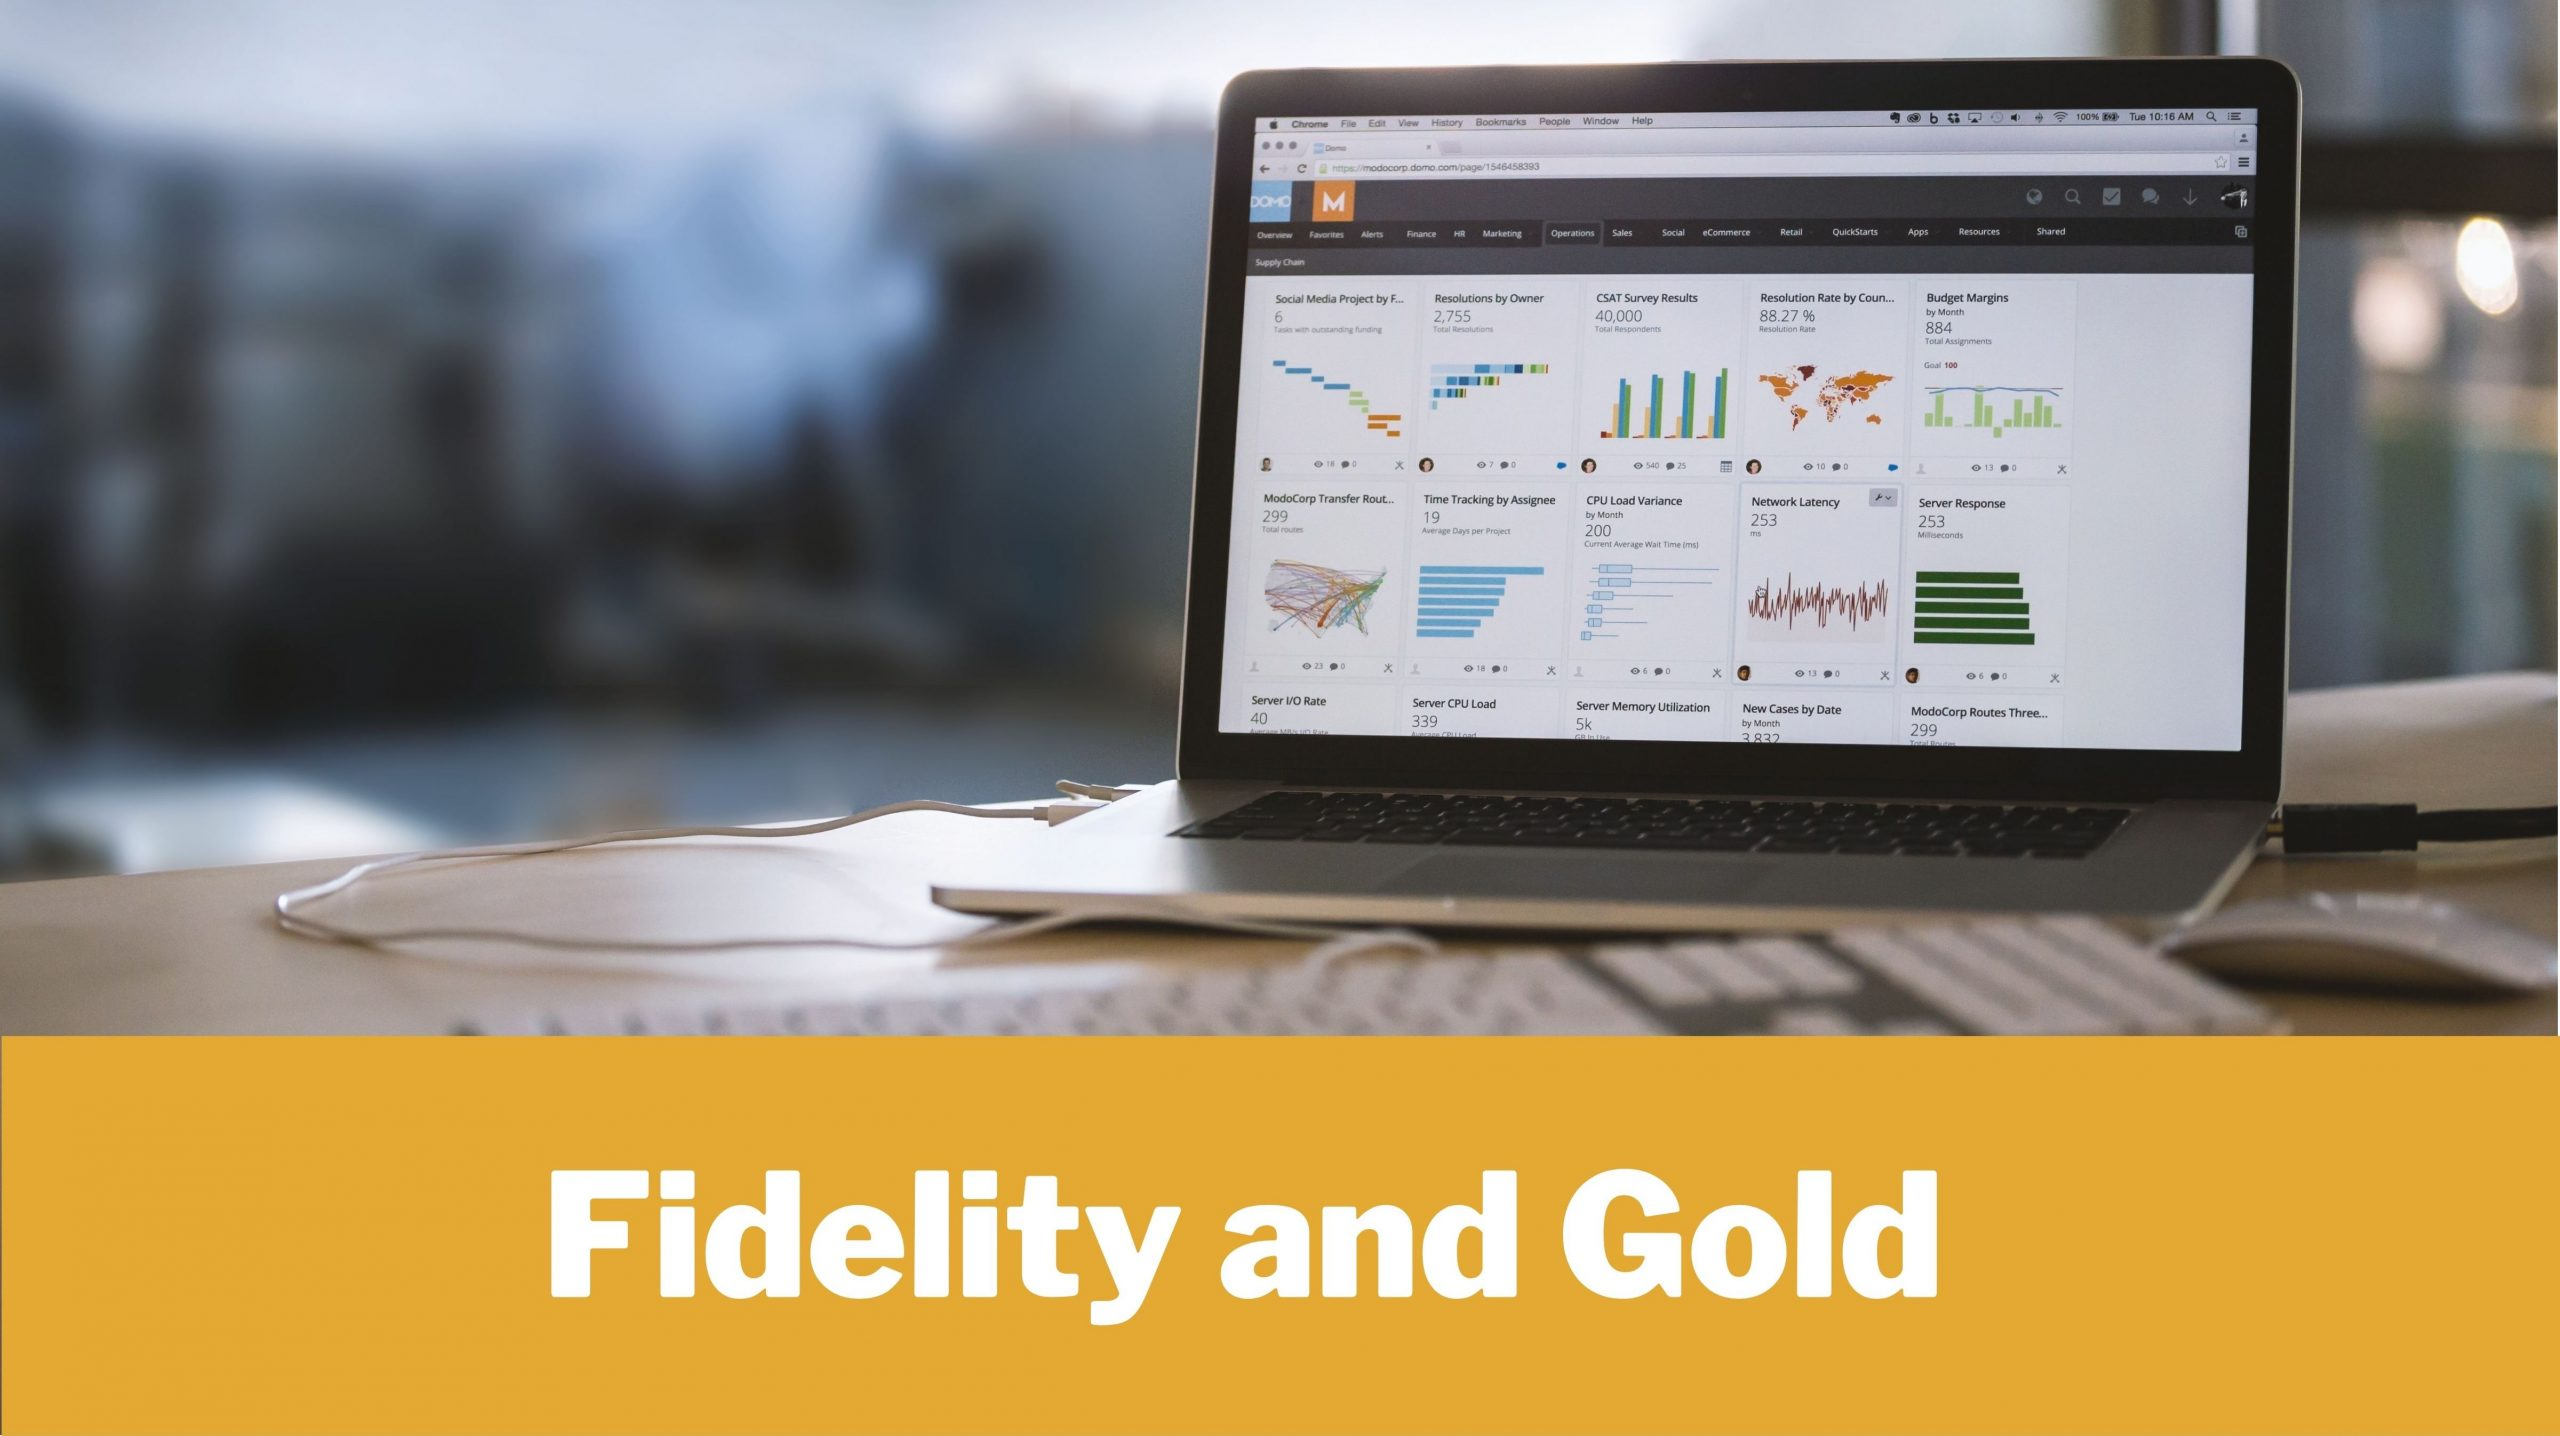 Fidelity and Gold Hero Image